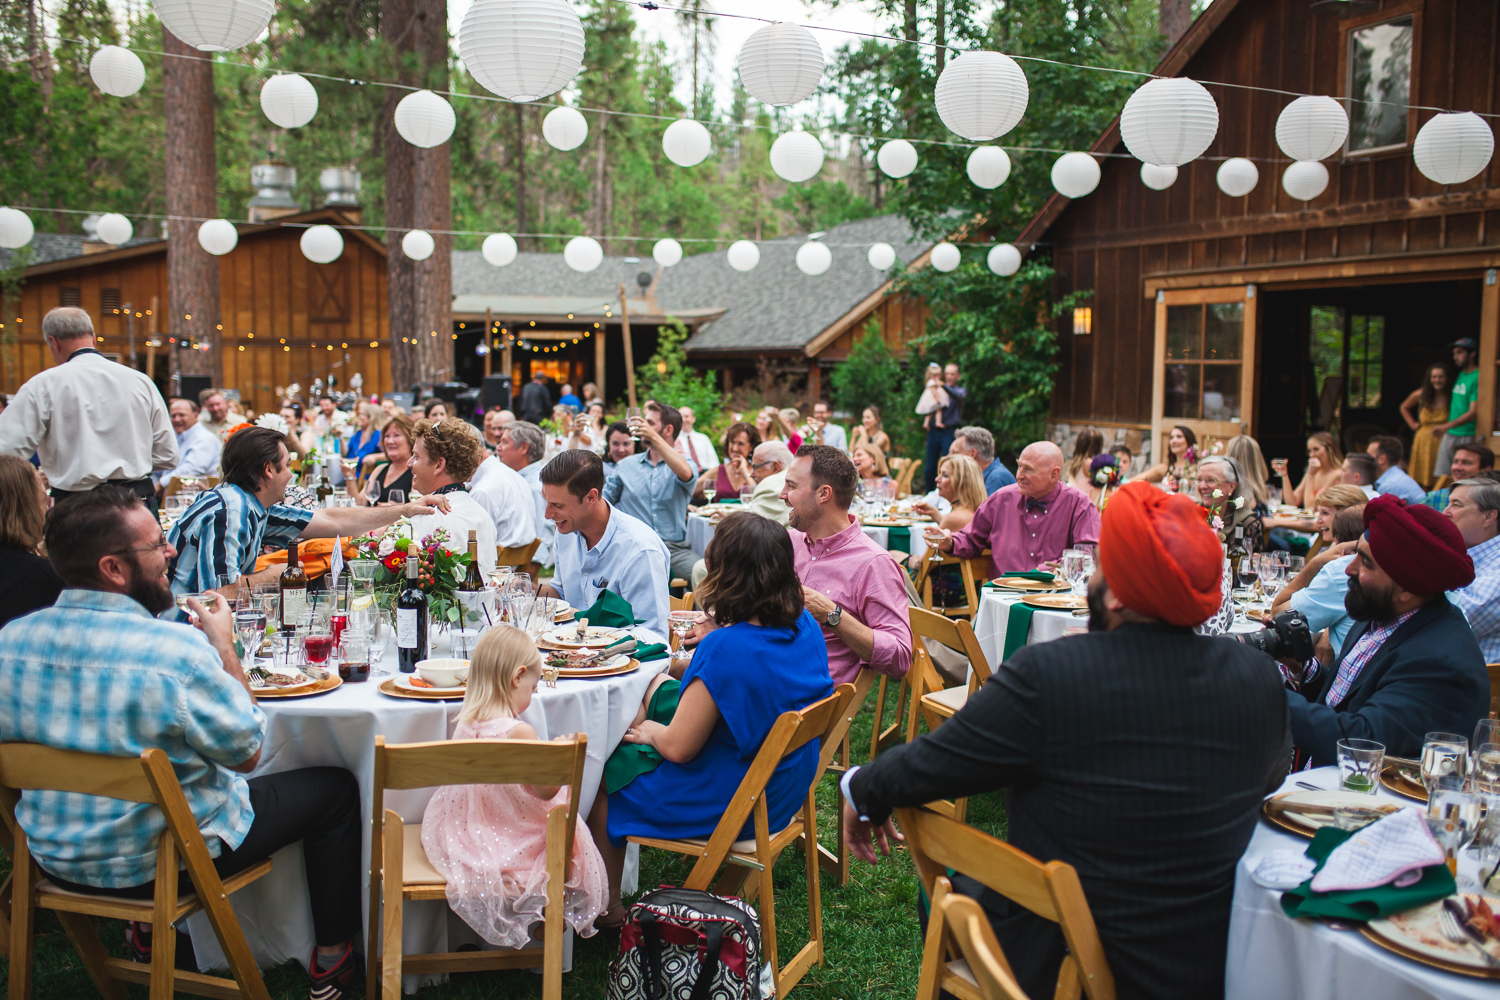 evergreen lodge yosemite reception.jpg